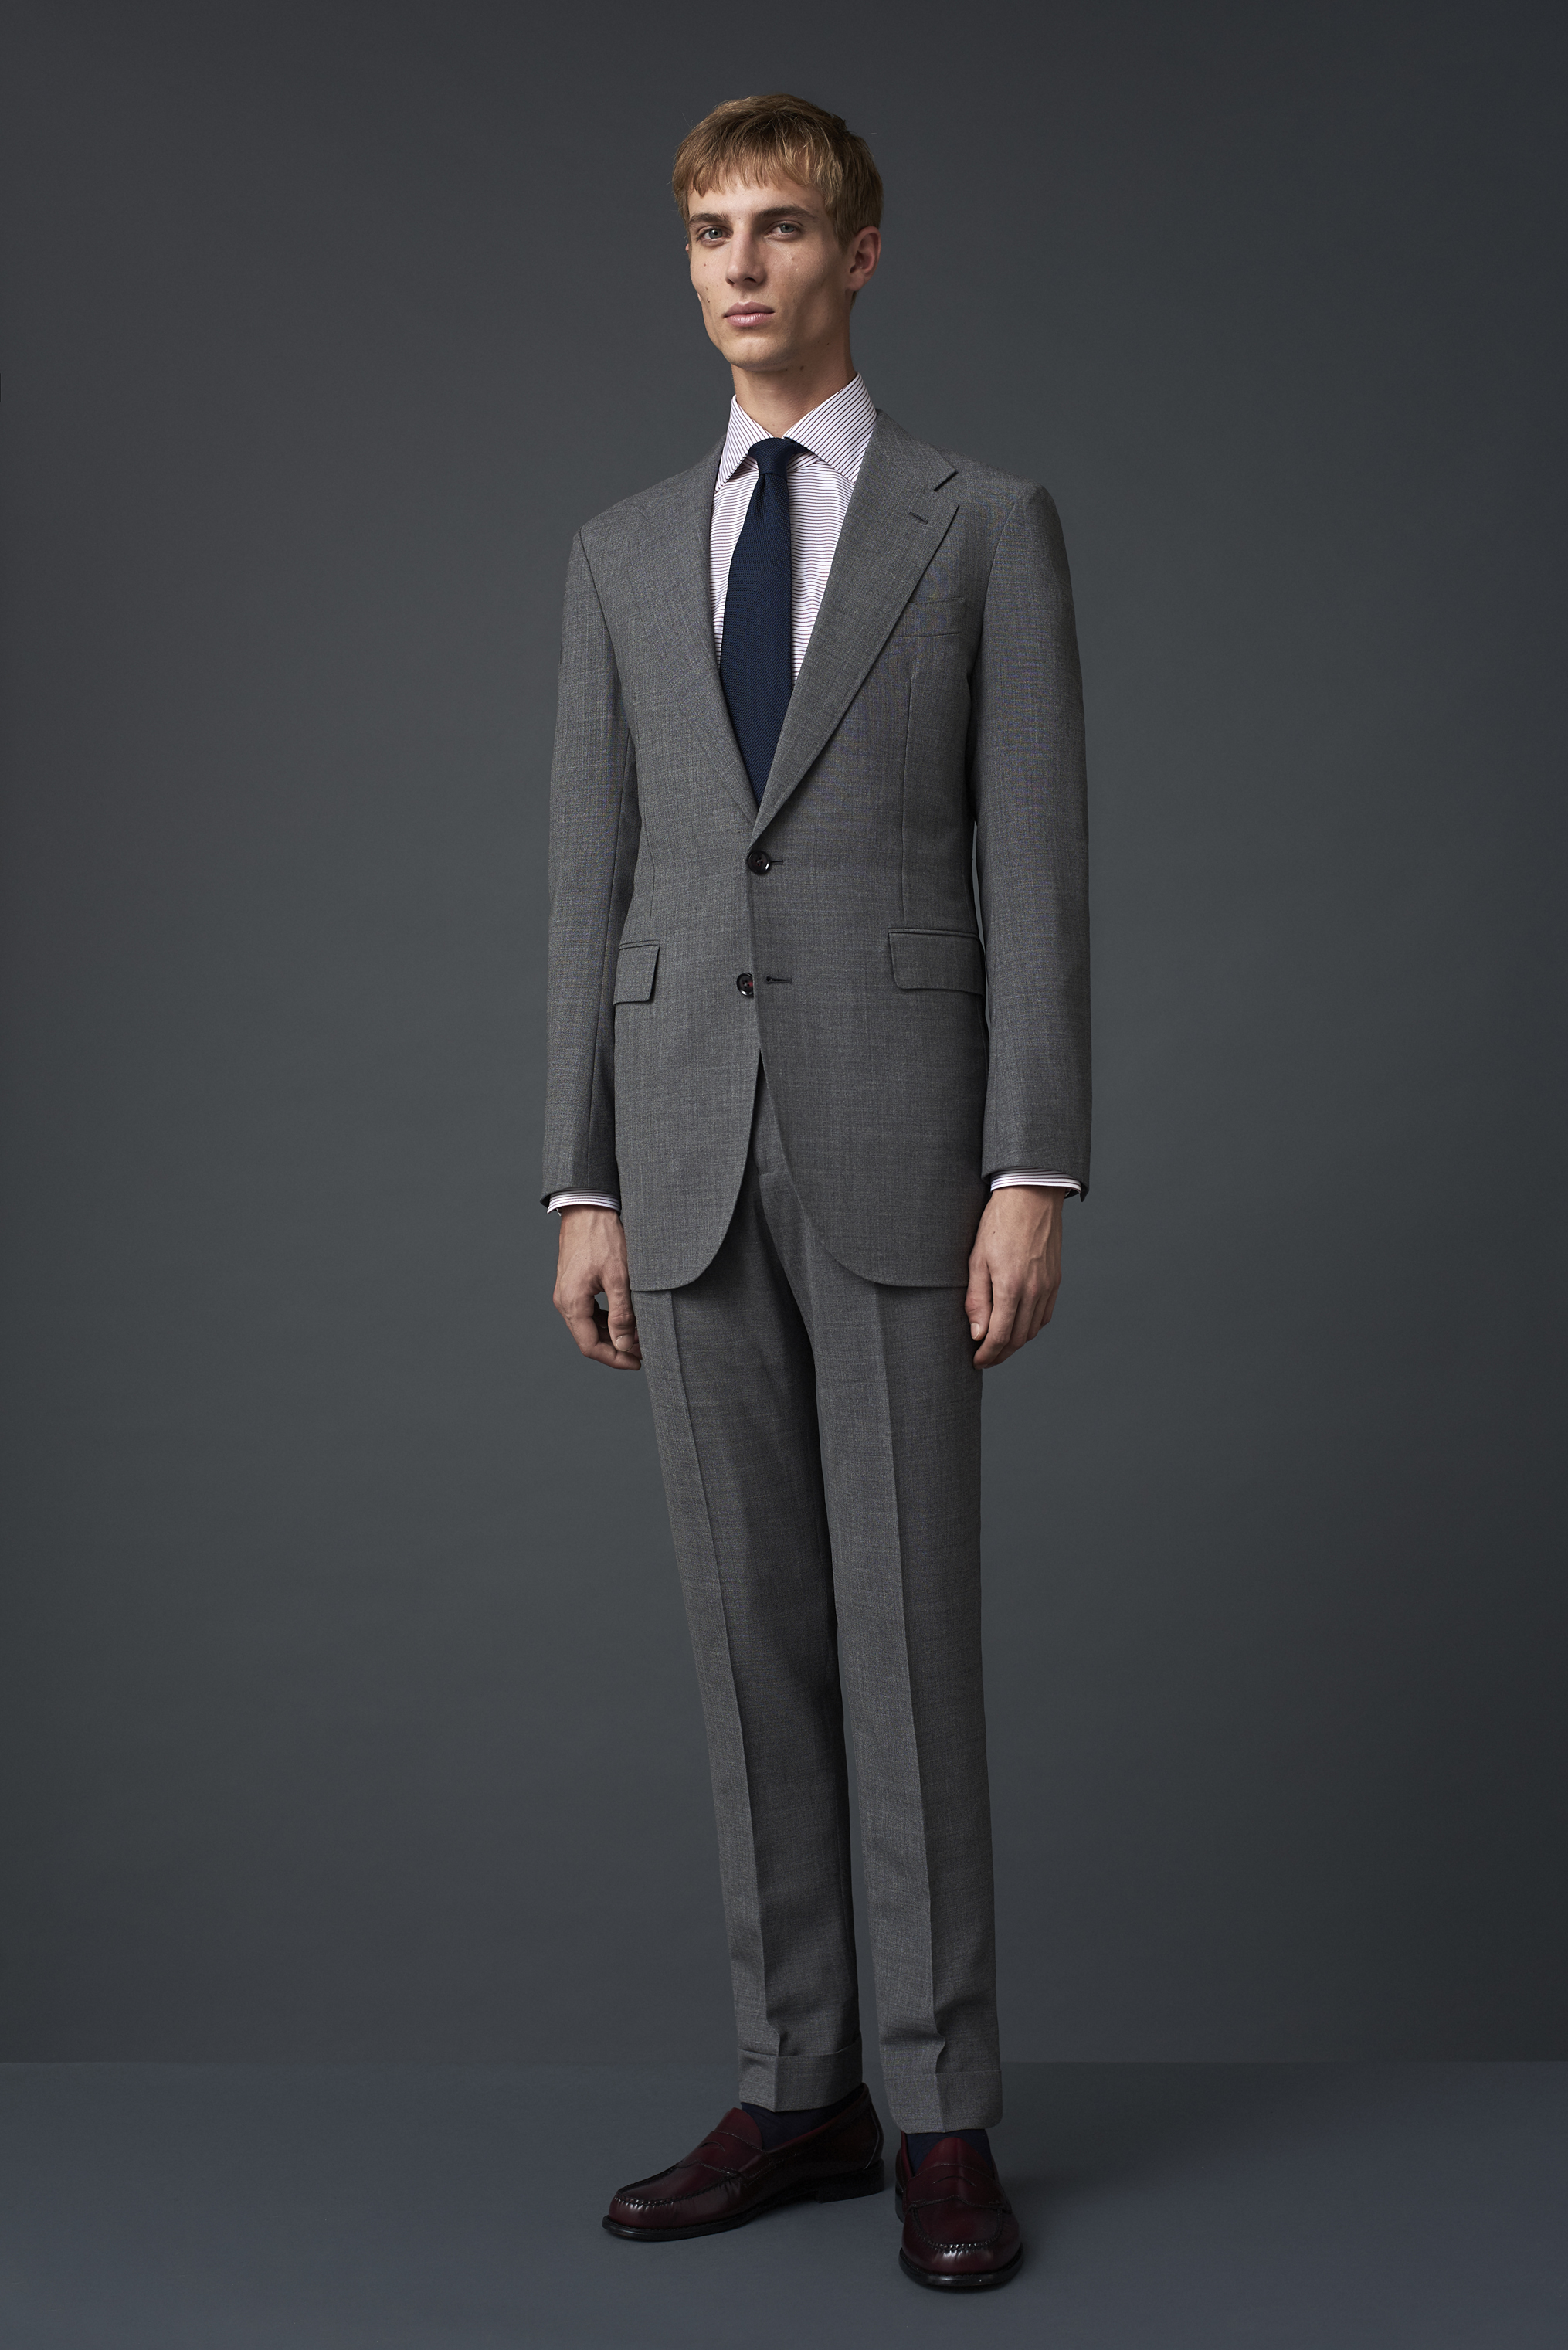 Mid grey fresco three ply suit with a wide notch lapel, woven in Huddersfield. Worn with a horizontal burgundy striped shirt and a French navy grenadine tie made in Como, Italy.